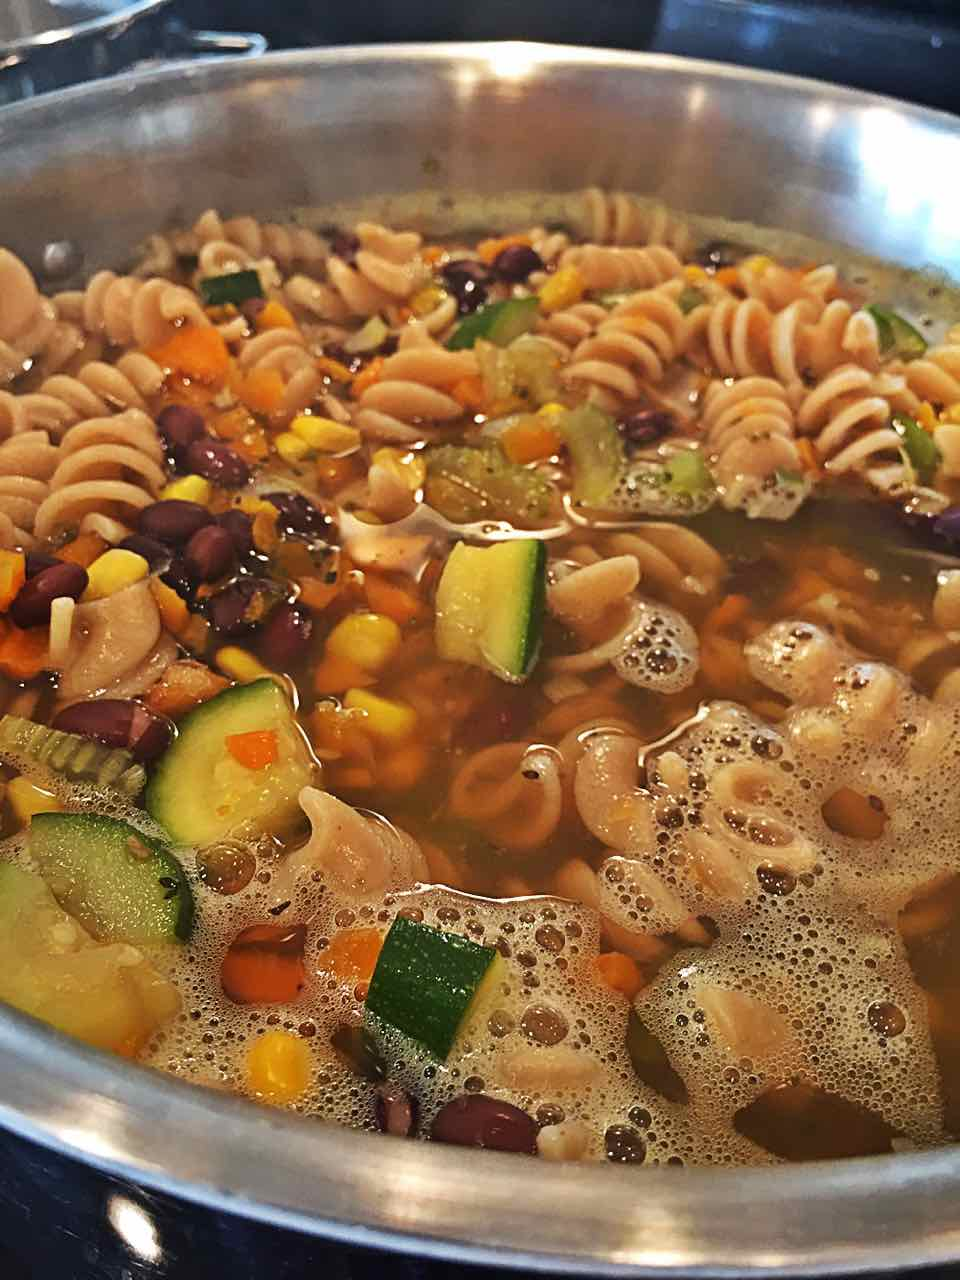 Image of vegan vegetable medley soup with vegetable broth in pot.